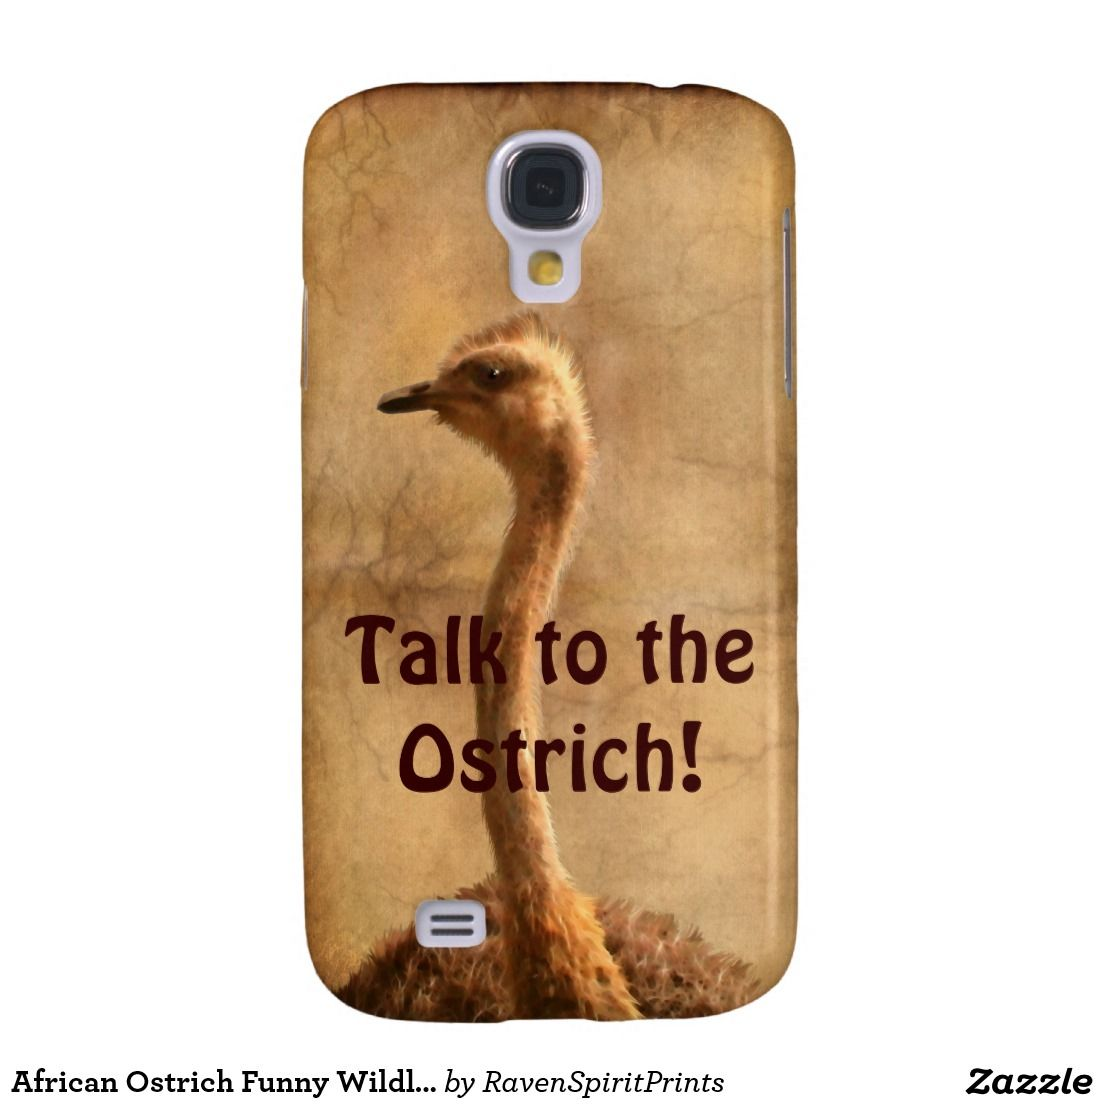 African Ostrich Funny Wildlife Phone Case